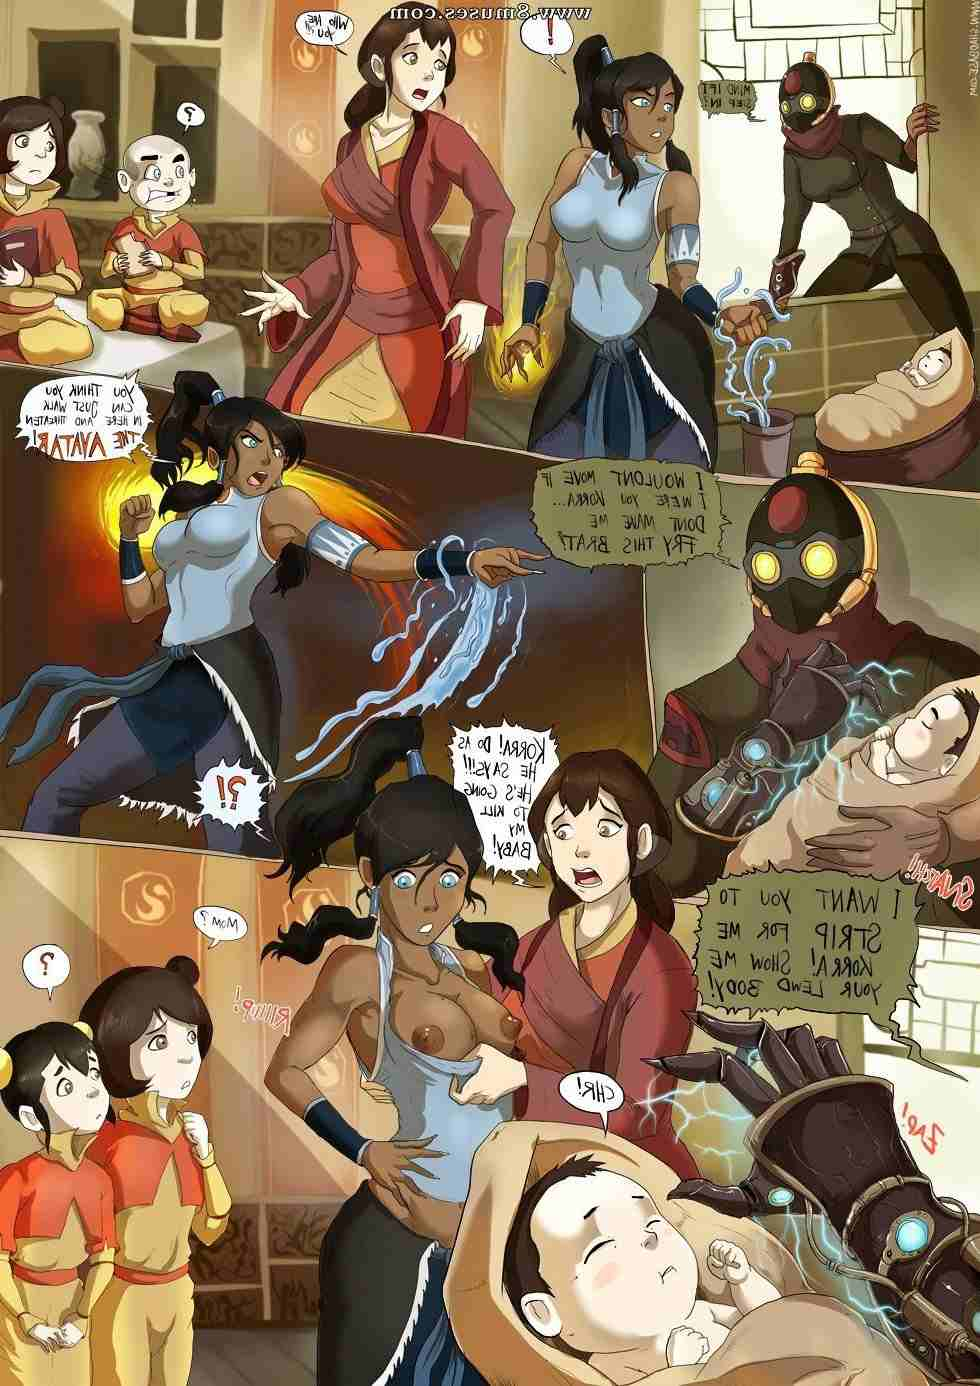 comics/porn-comics-all/ShadBase-Comics/The-lezzing-of-korra The_lezzing_of_korra__8muses_-_Sex_and_Porn_Comics_2.jpg